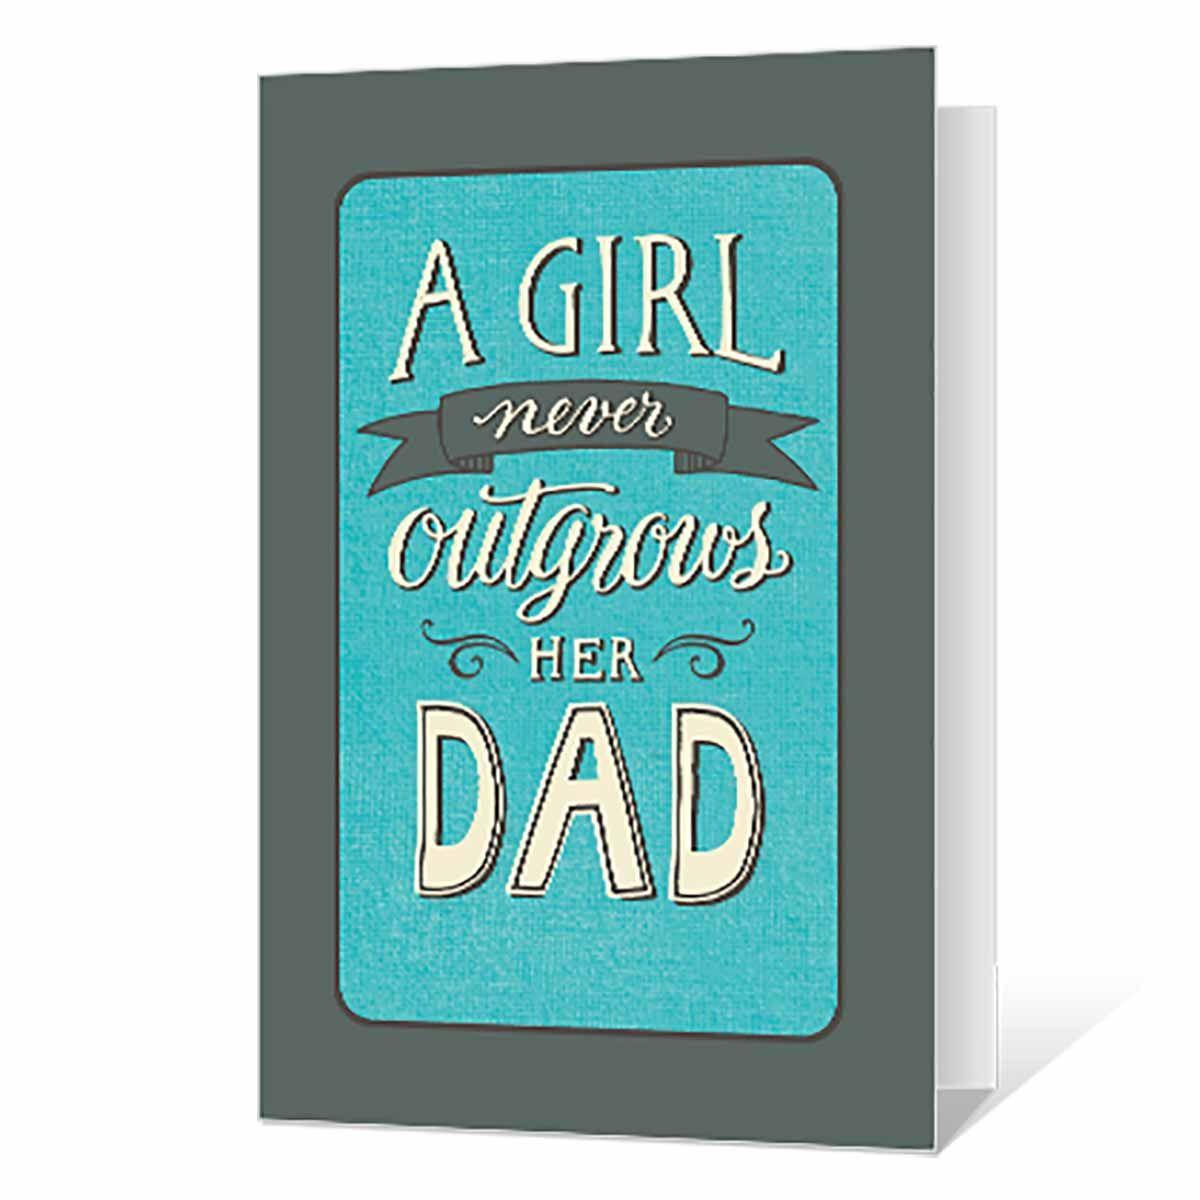 """<p>Remind Dad that he won't lose his little girl, even when she grows up and gets married. </p><p><em>Get the printable from <a href=""""https://www.bluemountain.com/cards/fathers-day/love-from-daughter-printable/card-3475636"""" rel=""""nofollow noopener"""" target=""""_blank"""" data-ylk=""""slk:Blue Mountain"""" class=""""link rapid-noclick-resp"""">Blue Mountain</a>.</em></p><p><strong>READ MORE</strong>: <a href=""""https://www.womansday.com/relationships/family-friends/g1151/fathers-day-presents/"""" rel=""""nofollow noopener"""" target=""""_blank"""" data-ylk=""""slk:40 Affordable Father's Day Gifts He'll Actually Love"""" class=""""link rapid-noclick-resp"""">40 Affordable Father's Day Gifts He'll Actually Love</a></p>"""